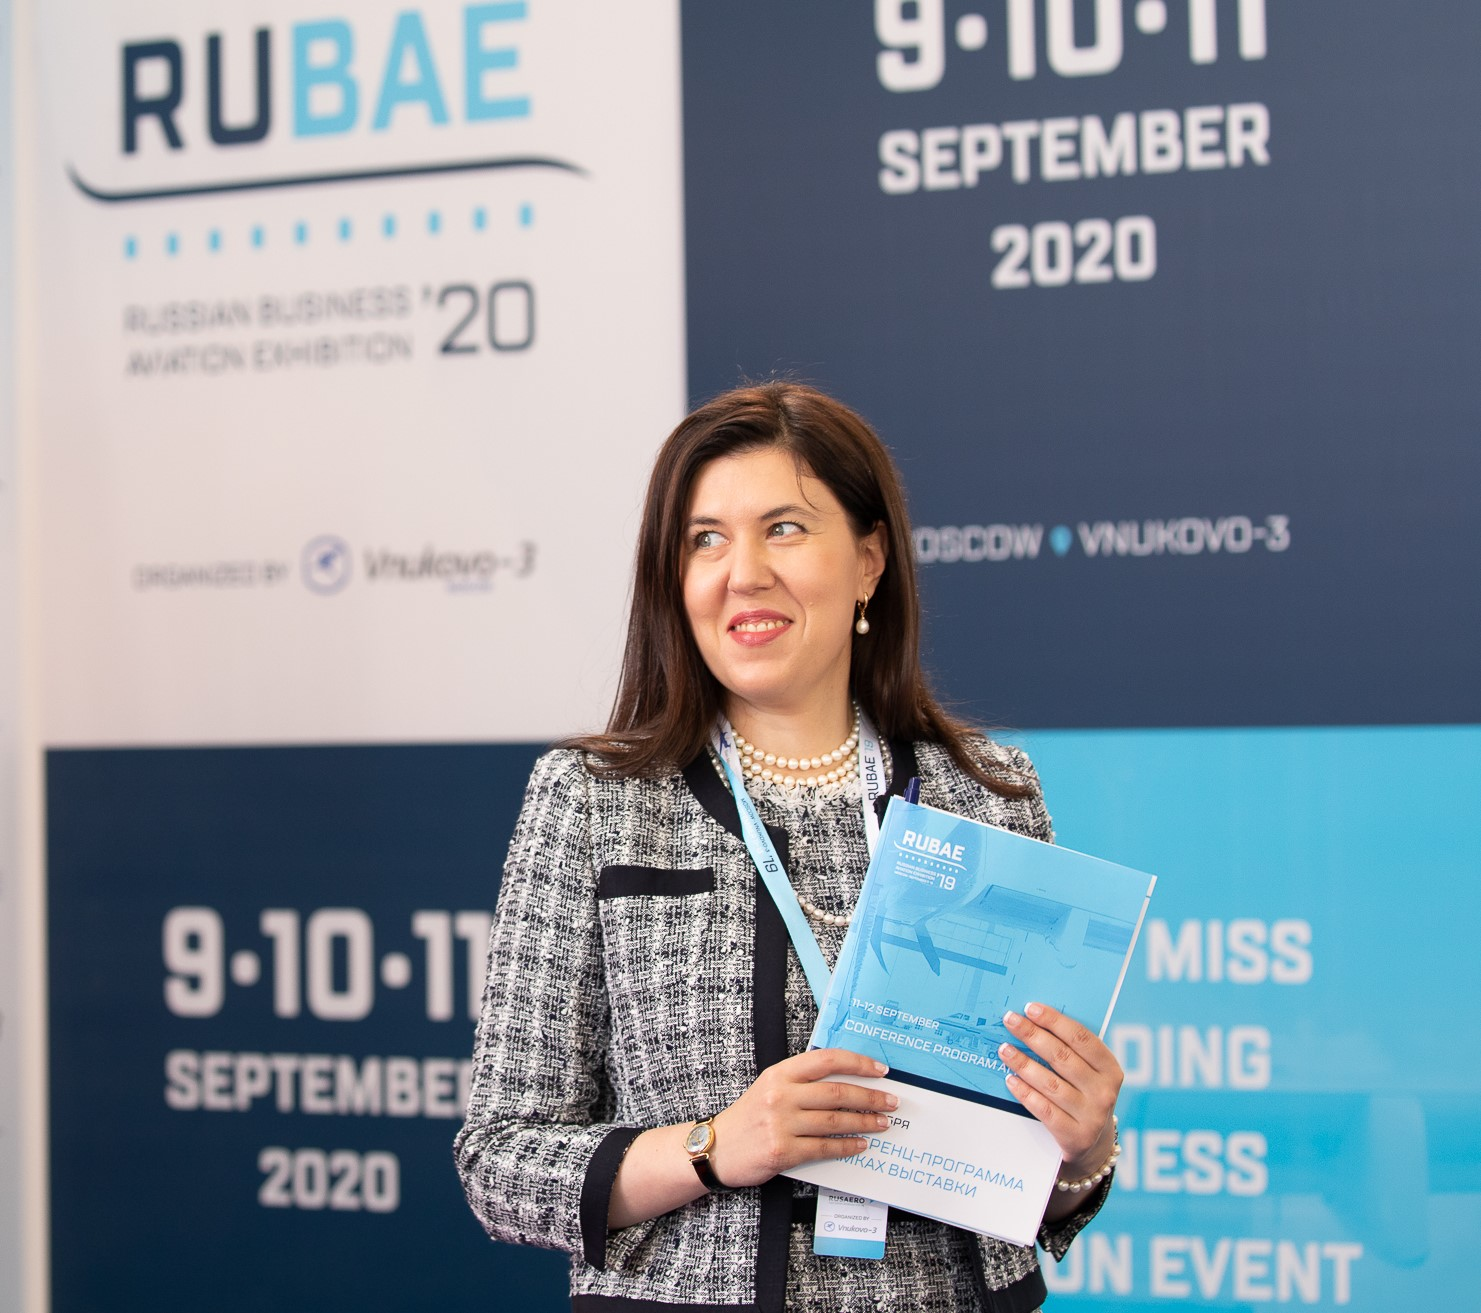 RUBAA to Organize Business Agenda at RUBAE 2020